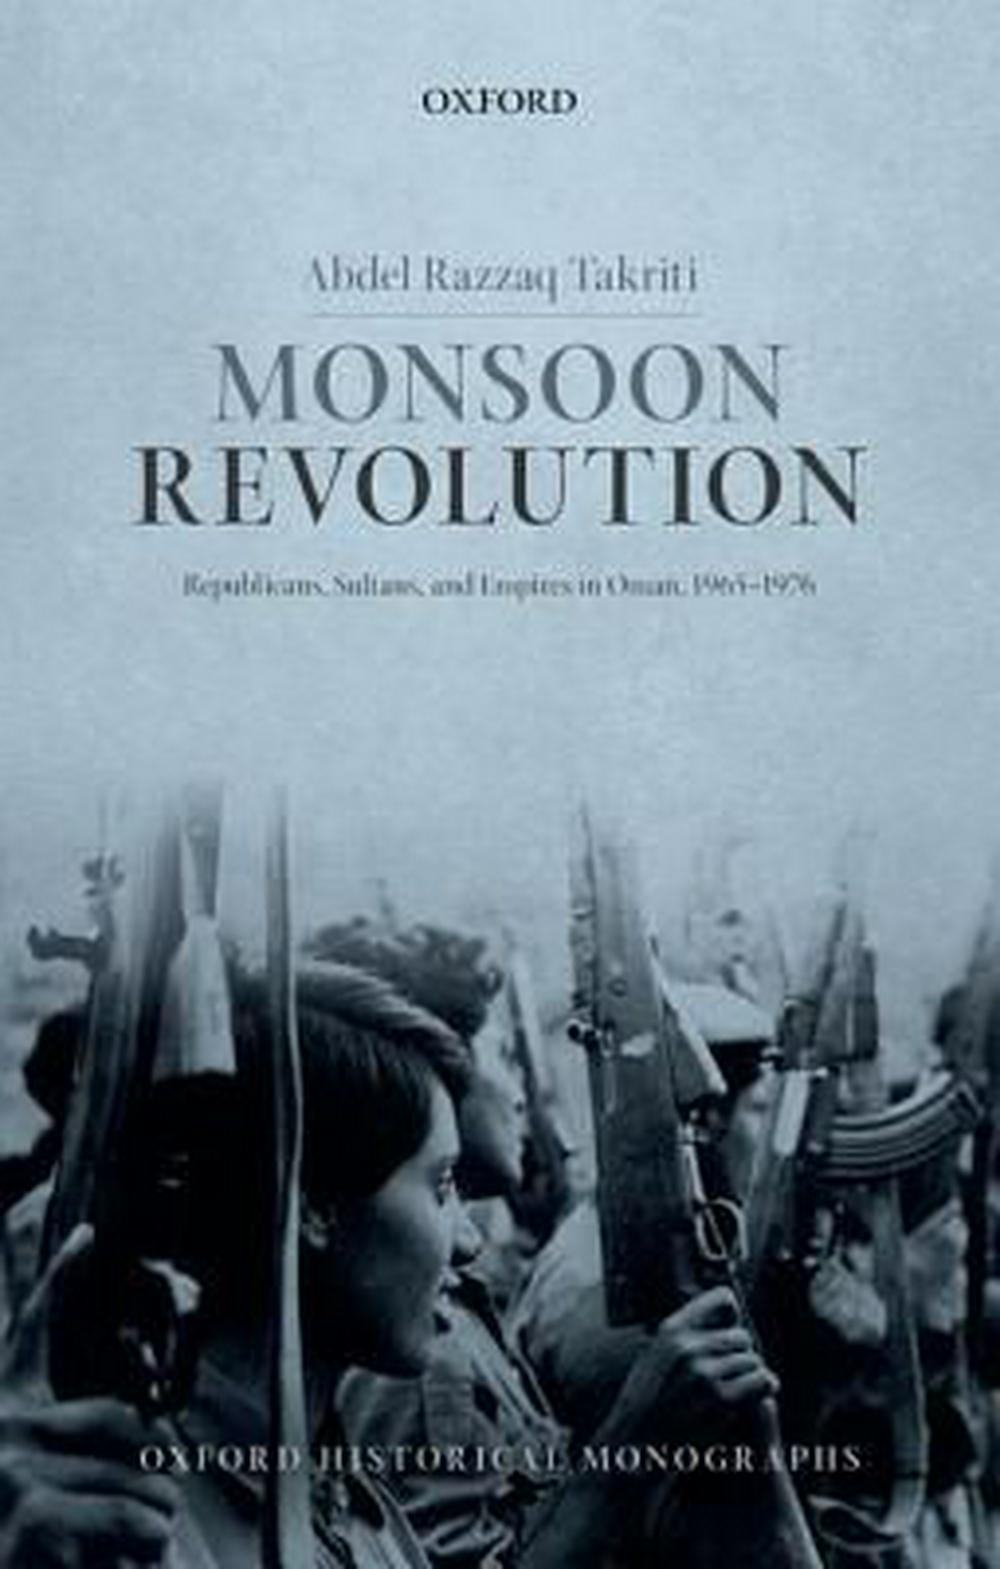 Monsoon RevolutionRepublicans, Sultans, and Empires in Oman, 1965...